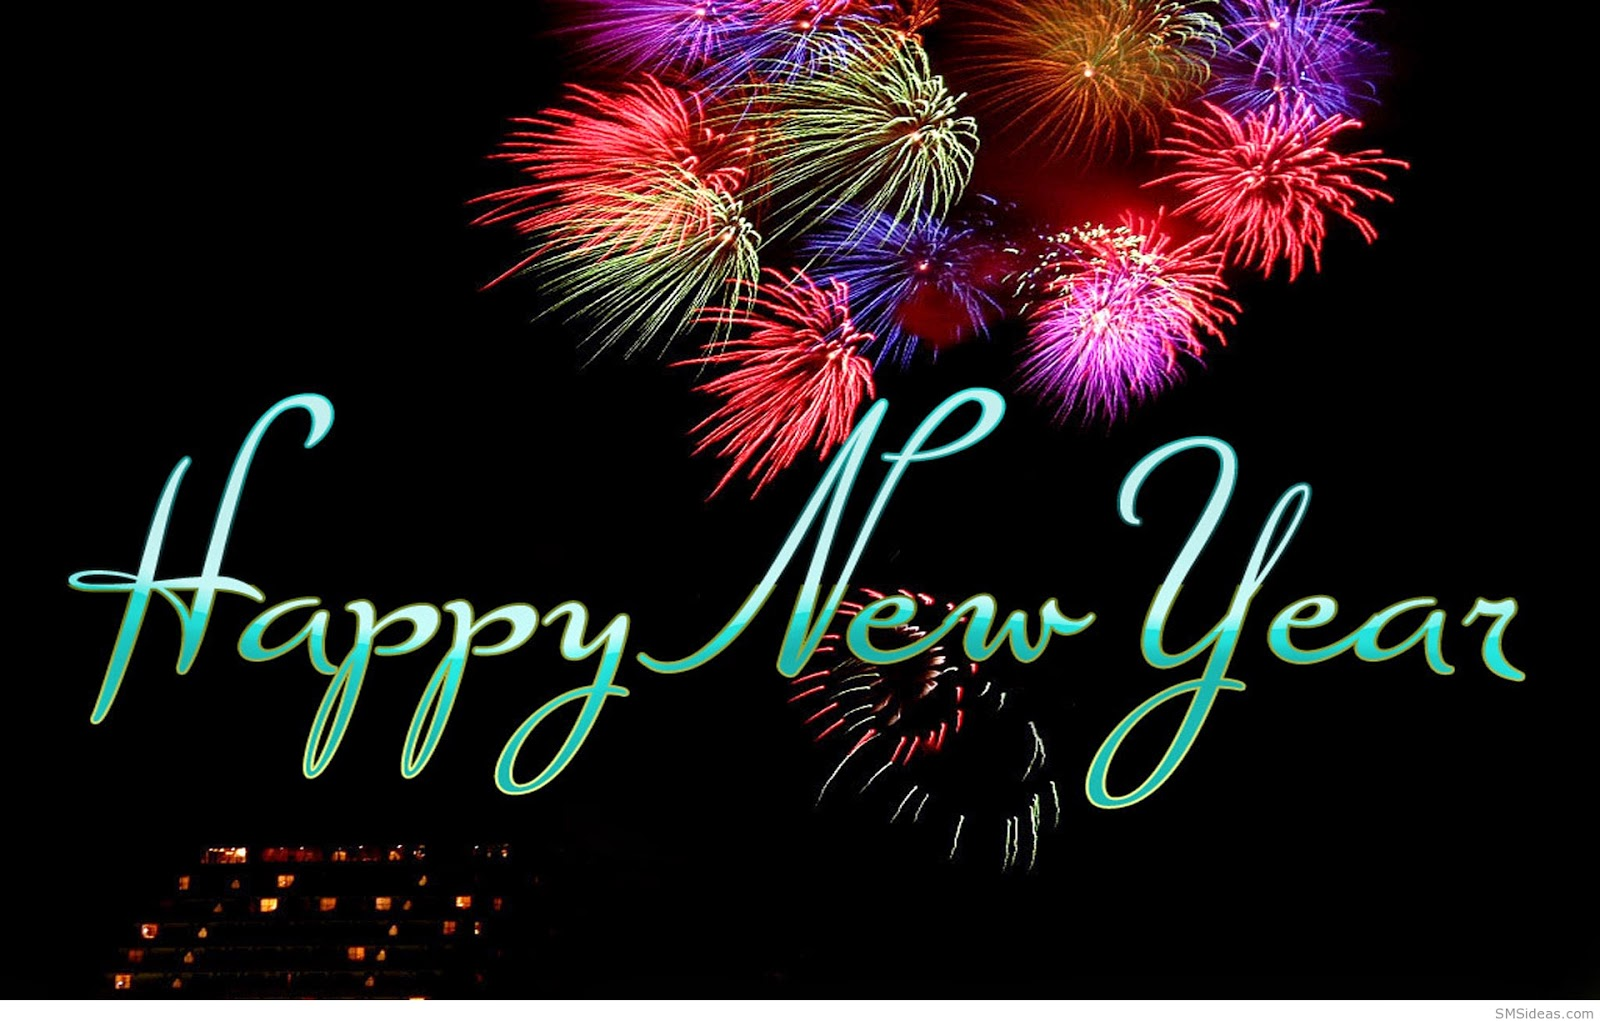 30 Best Happy New Year Pictures 2019 in HD - Happy New Year 2019 ...